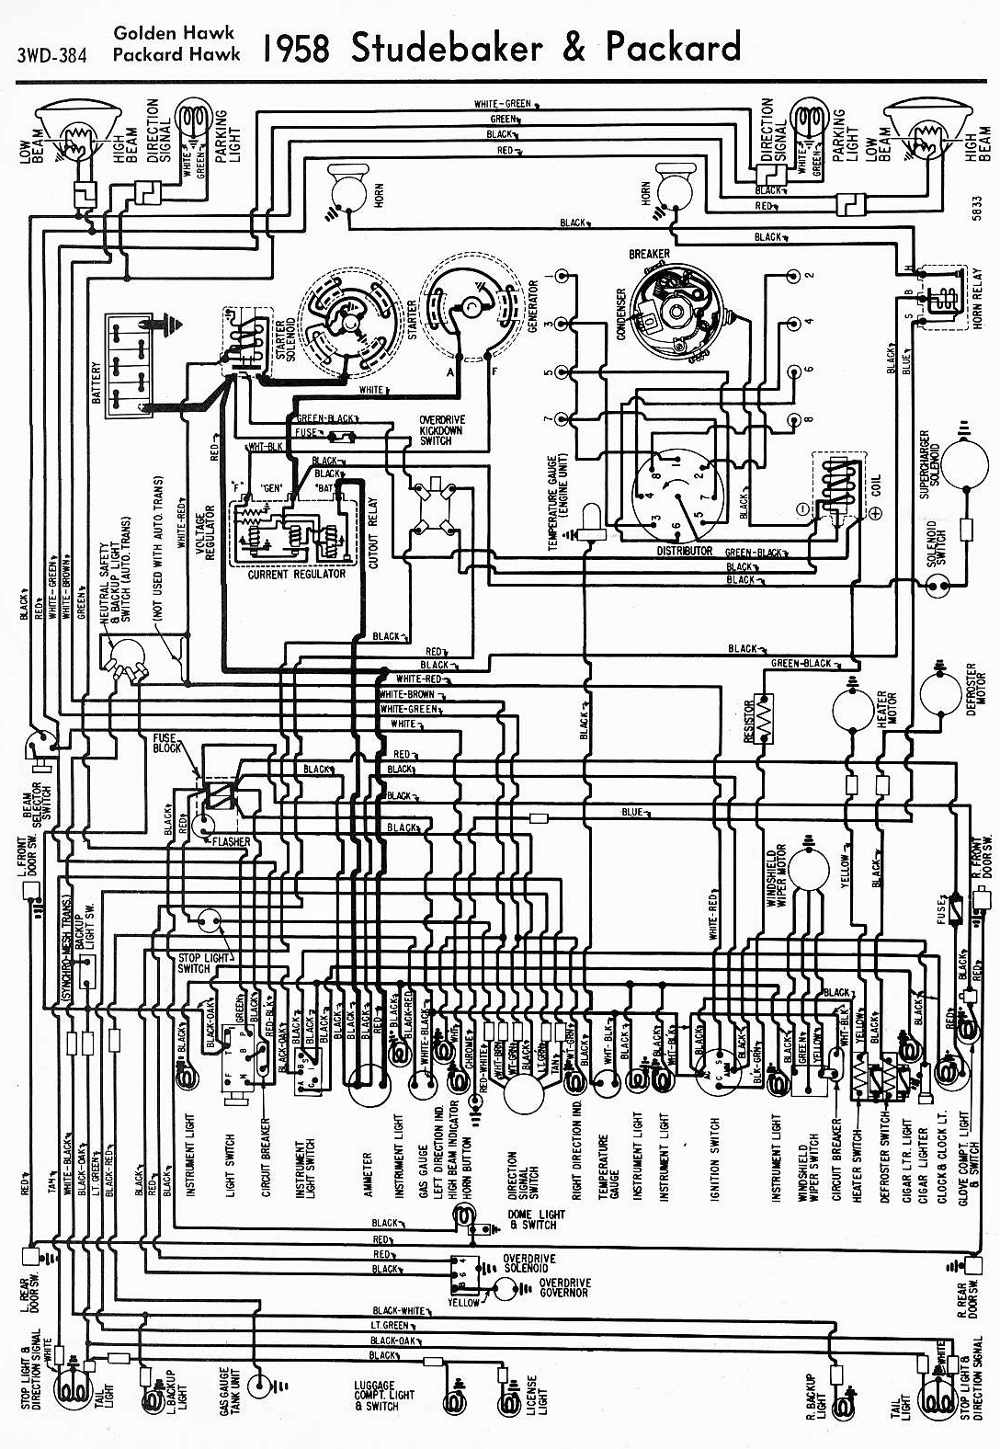 1958 opel wiring diagram wiring diagram packard car manuals wiring diagrams pdf fault codes rh automotive manuals net 1955 opel 1961 opel cheapraybanclubmaster Choice Image